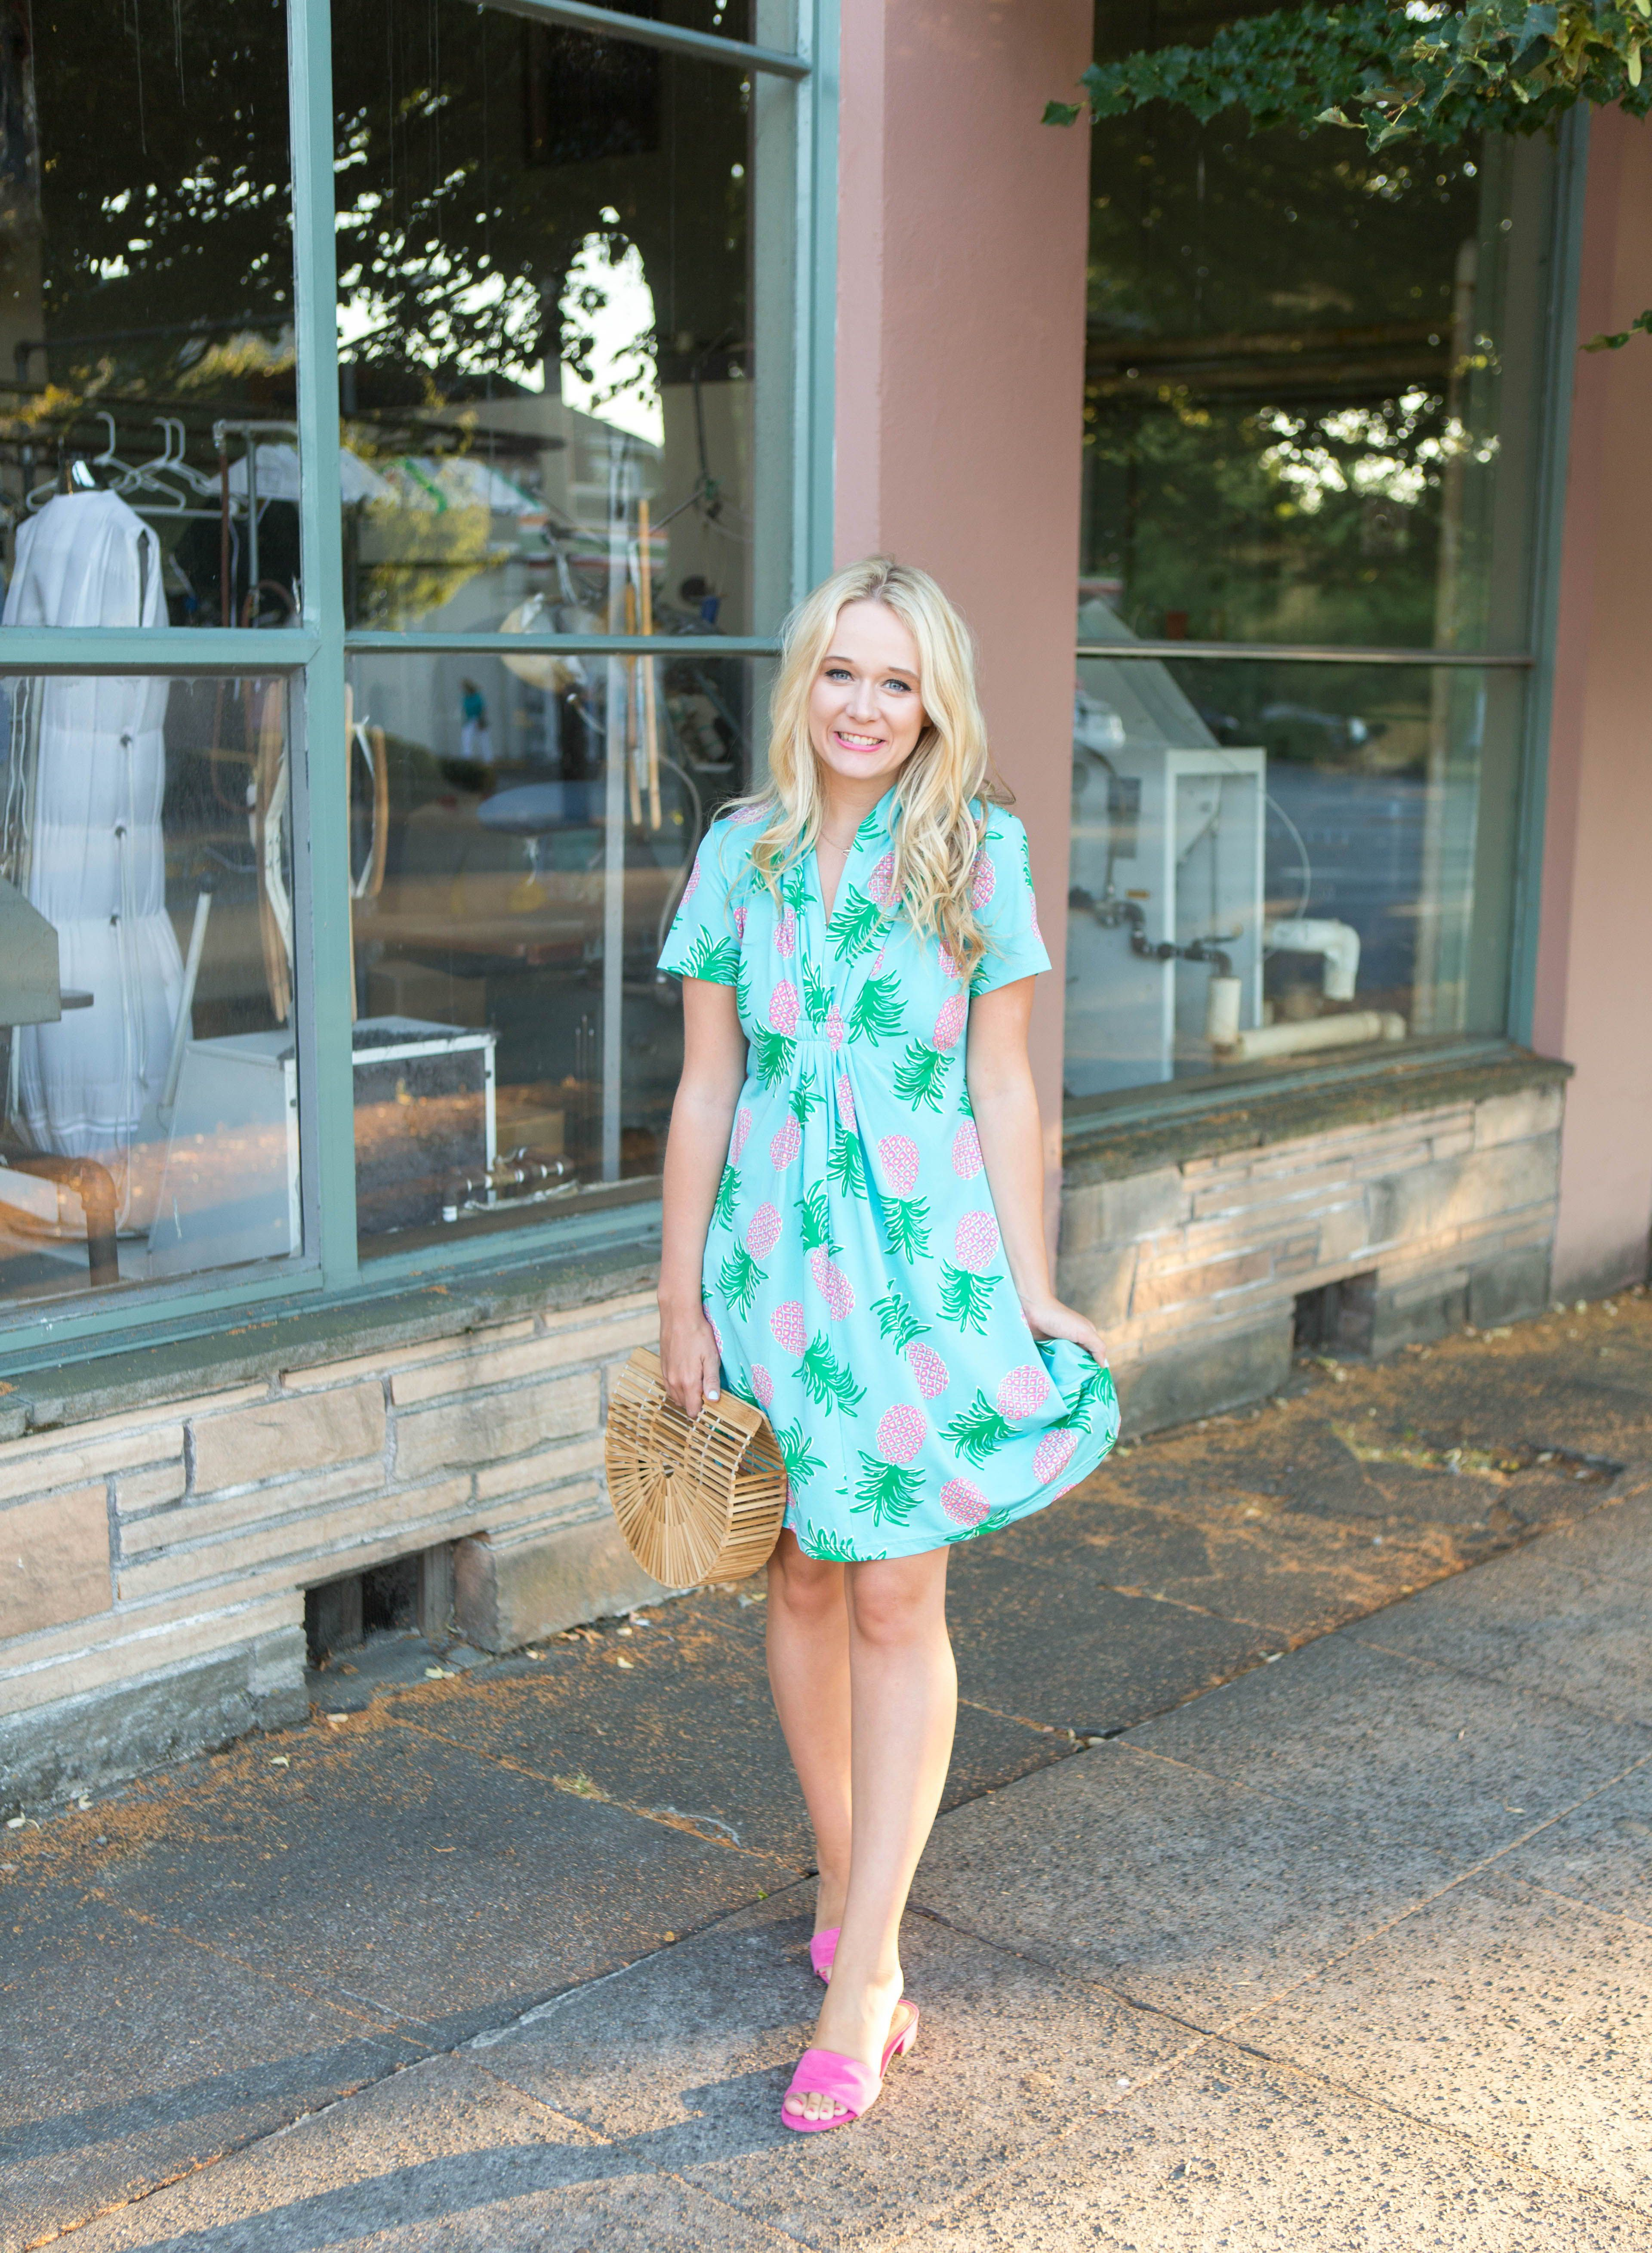 bbfe69fce6c3 Are you looking for a cute and comfy summer dress  It makes for the perfect summer  outfit idea with the pineapple print and pink sandals.